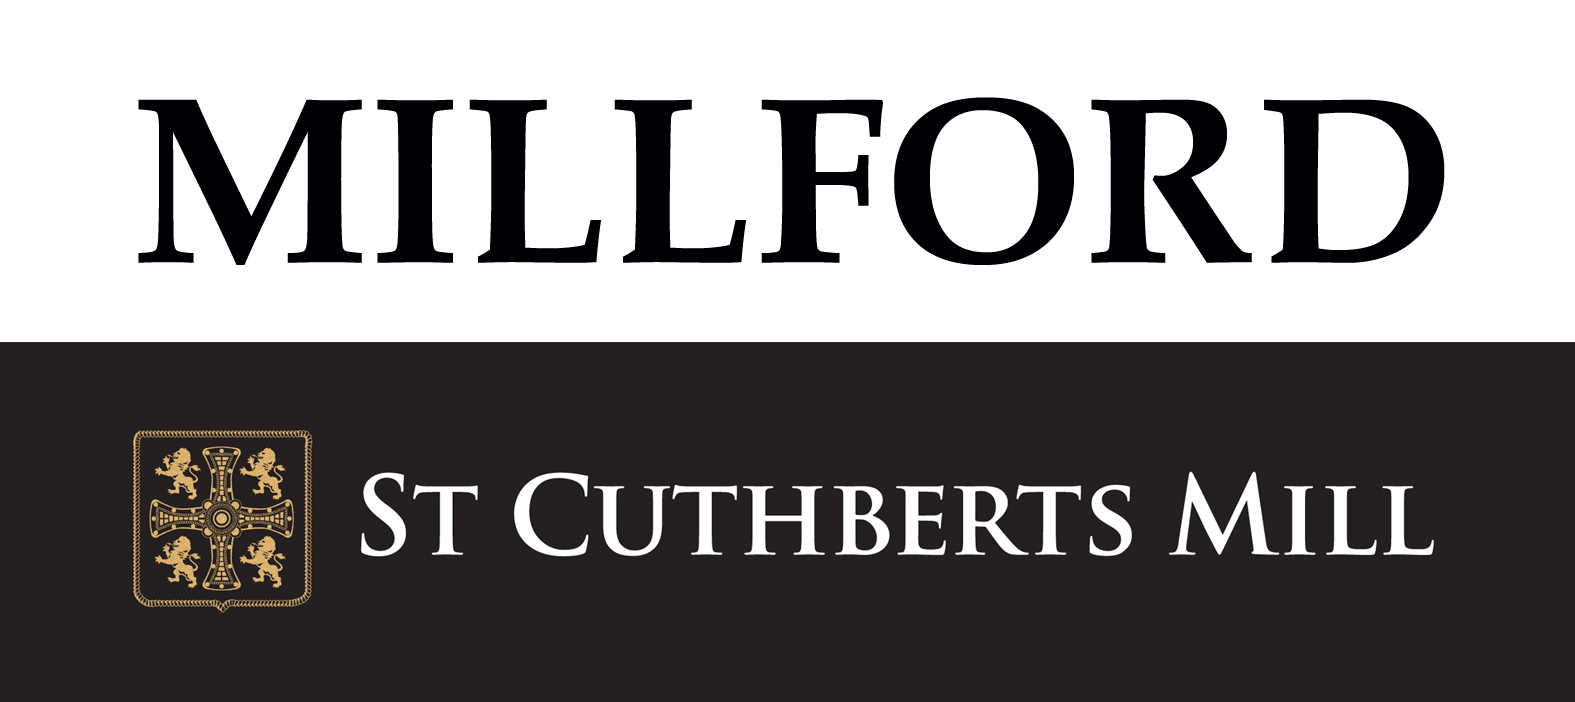 #Millford